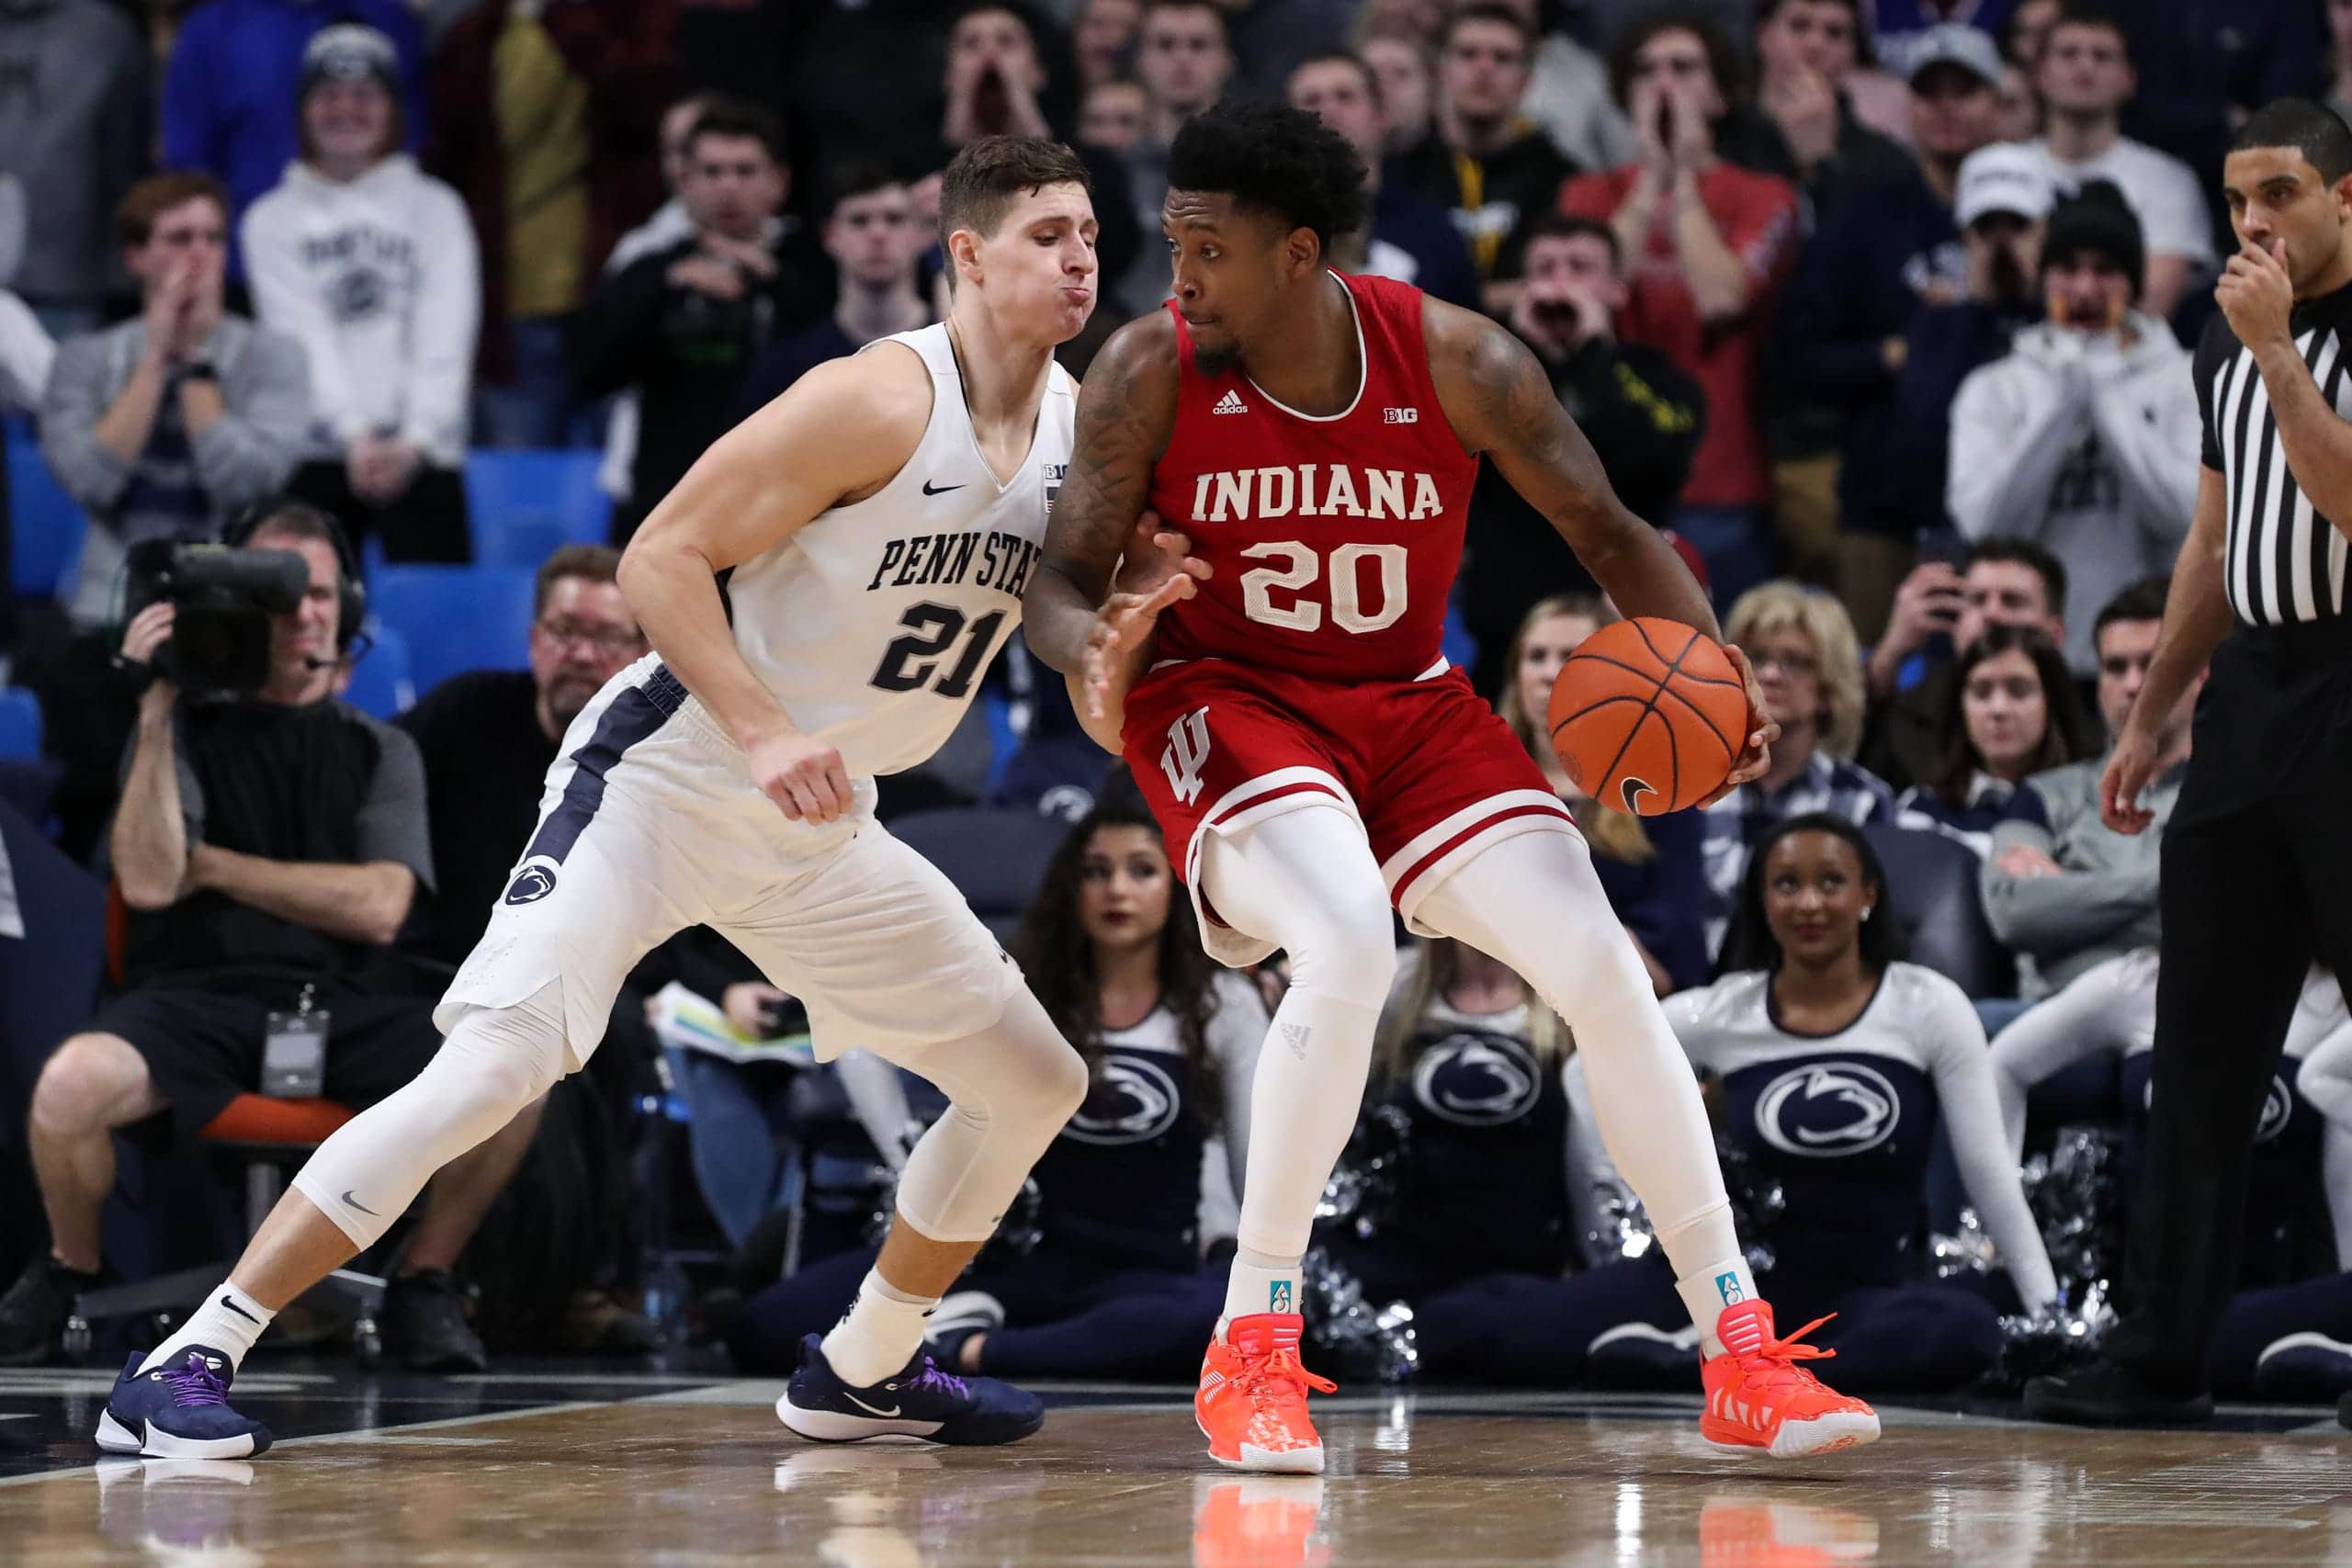 Penn State Nittany Lions at Indiana Hoosiers 02/23/20 Free Pick & Prediction